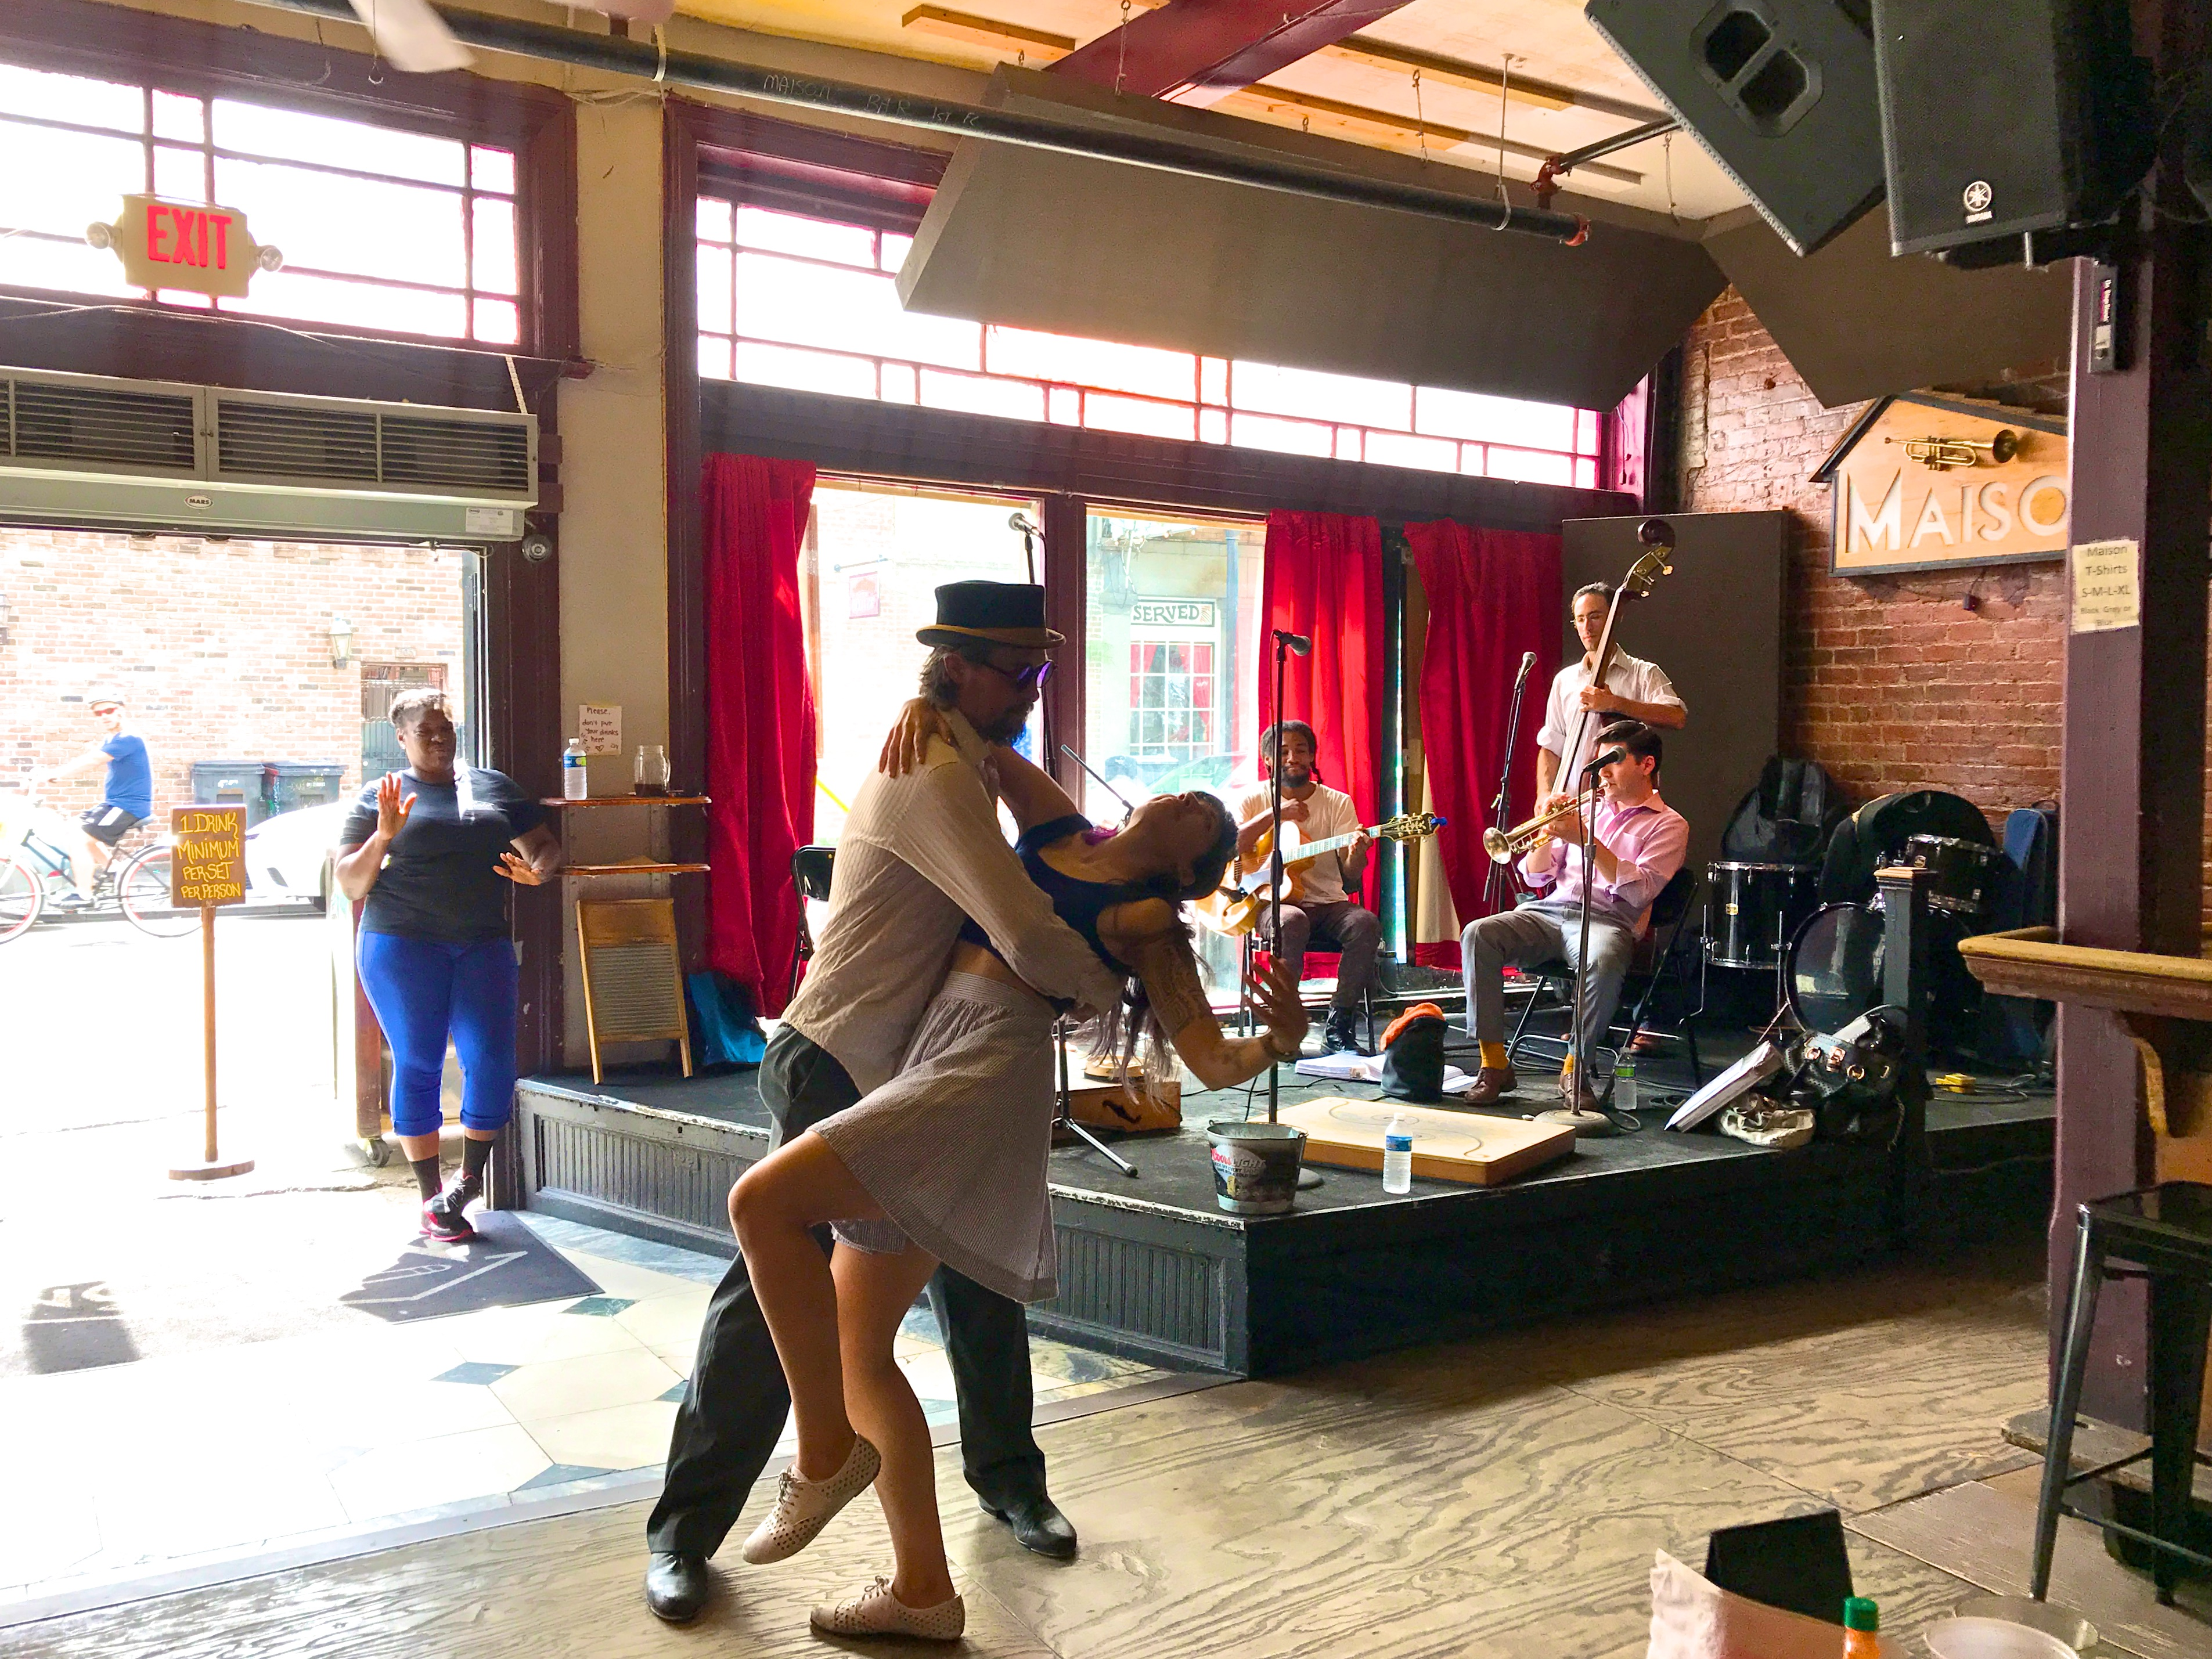 Dancing the lindyhop at Maison, New Orleans